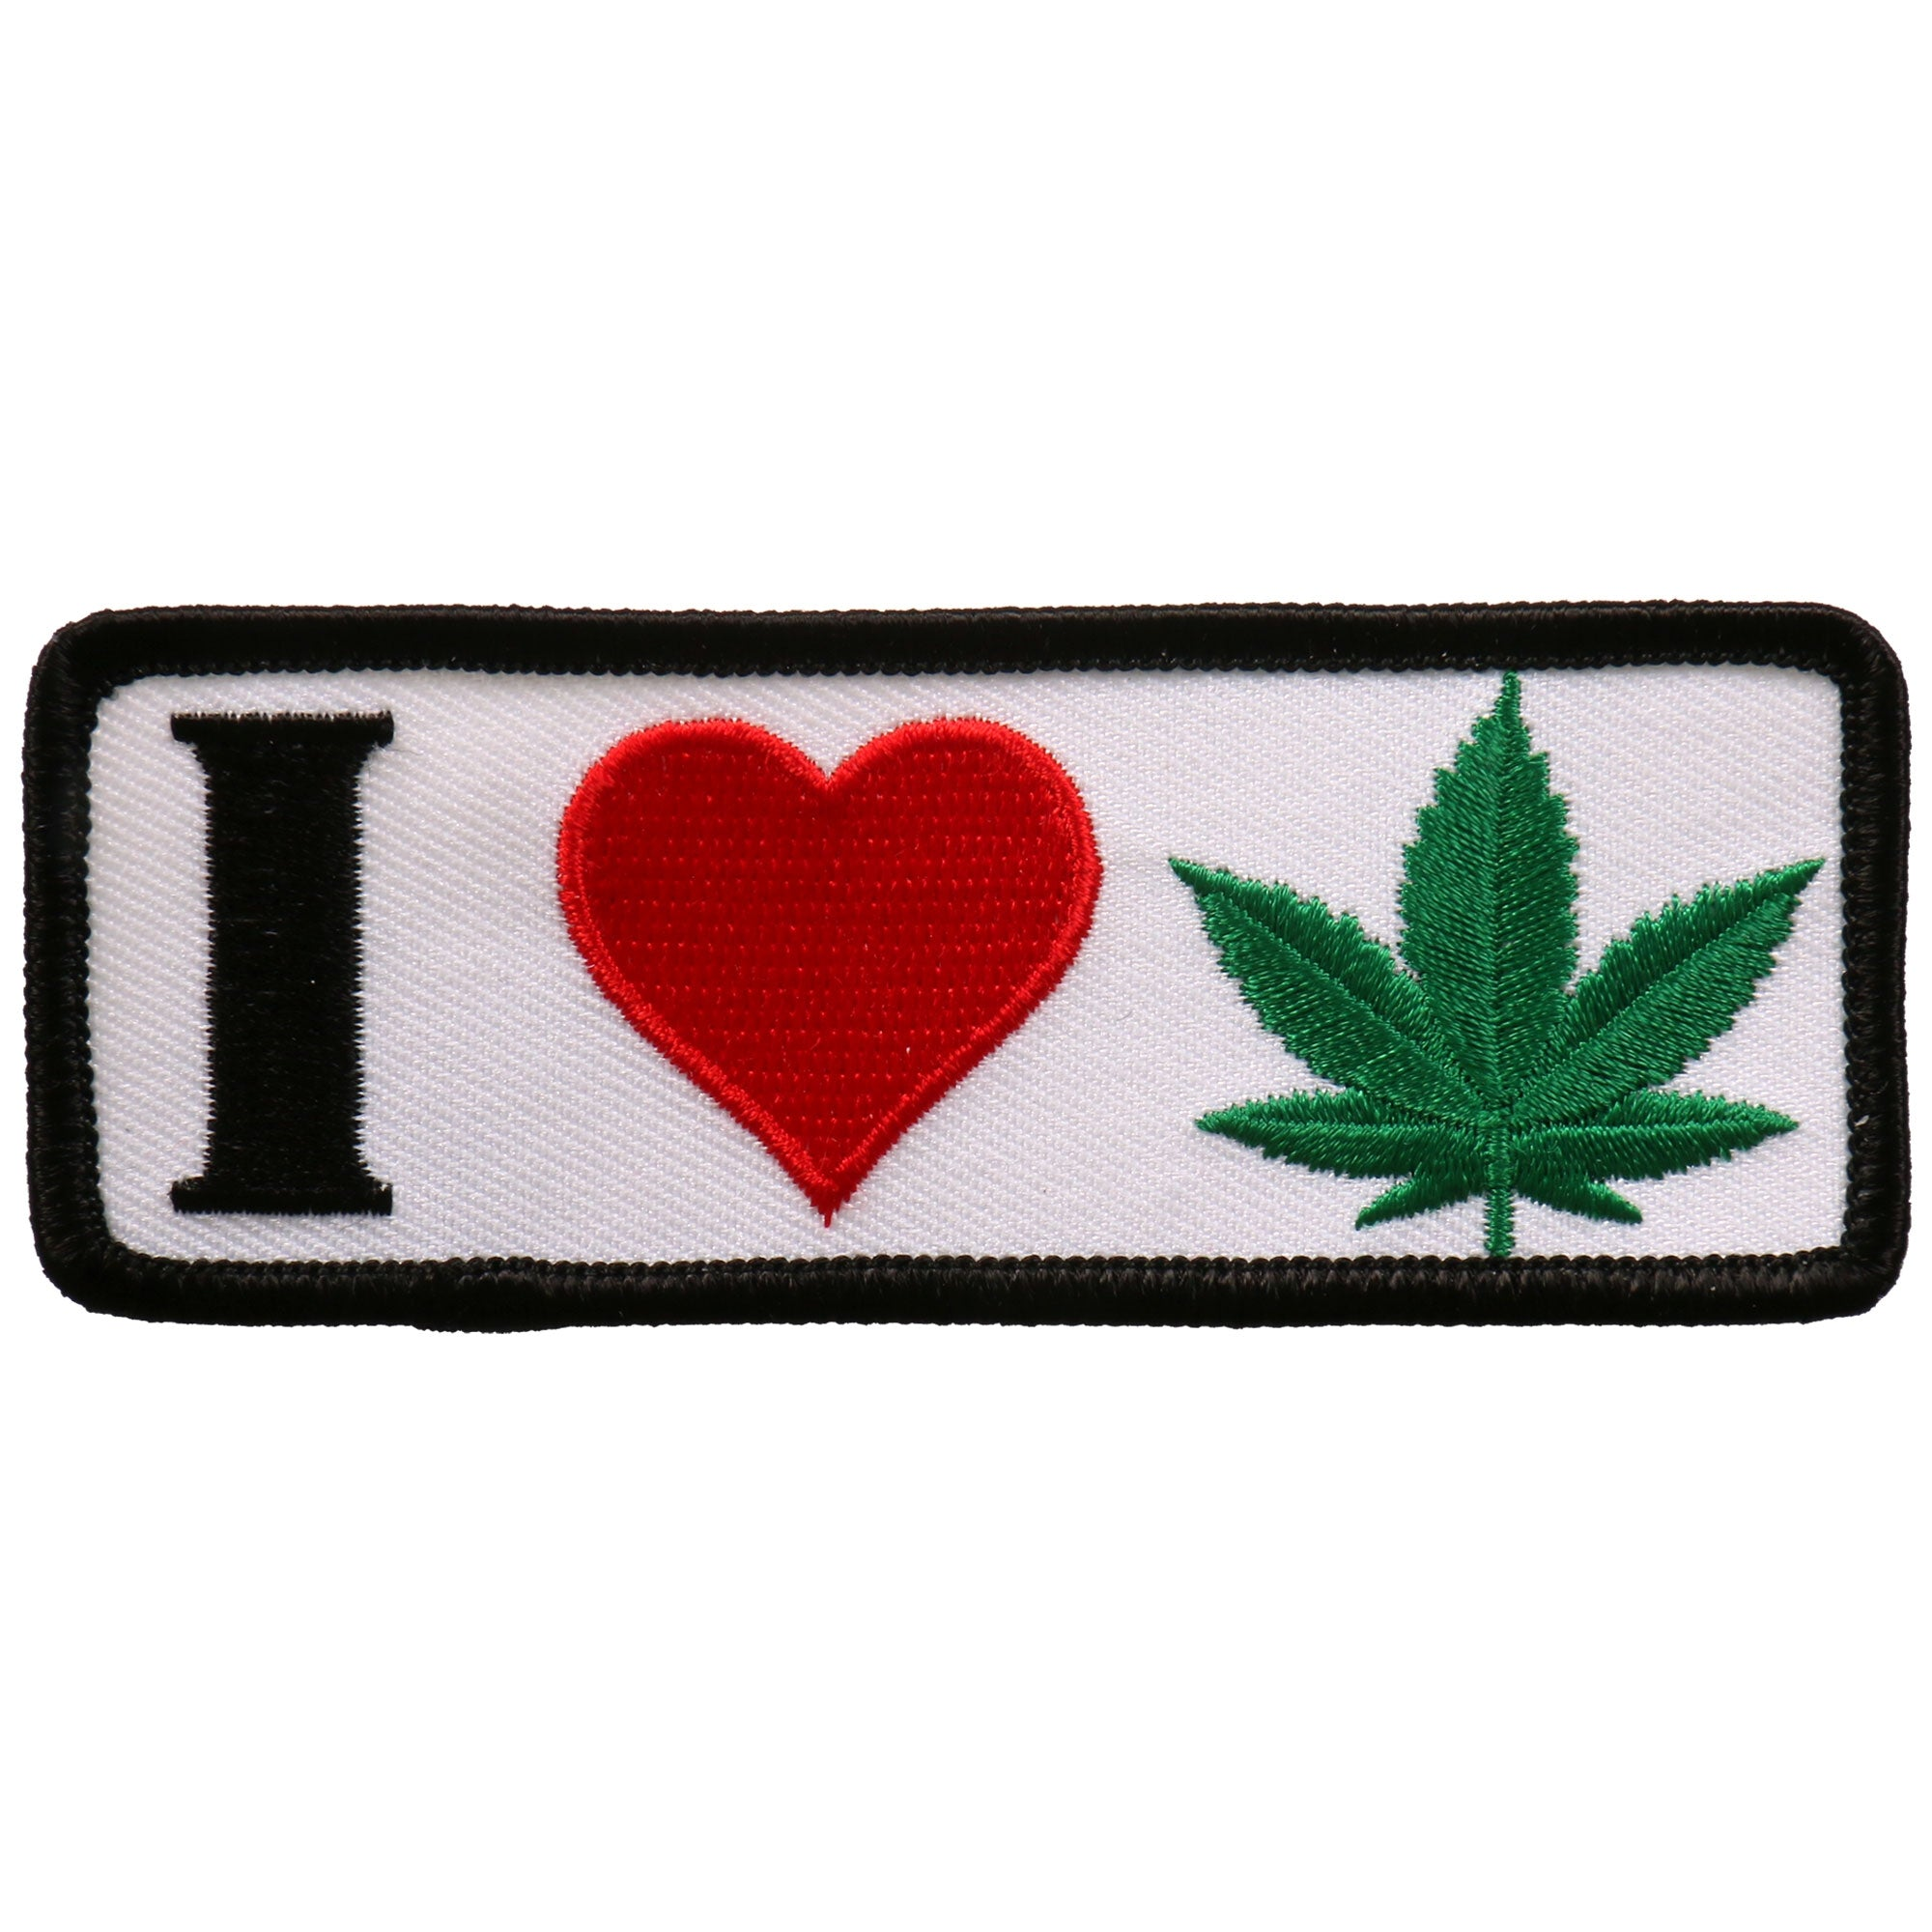 "Hot Leathers I Heart Weed 4""x2"" Patch"